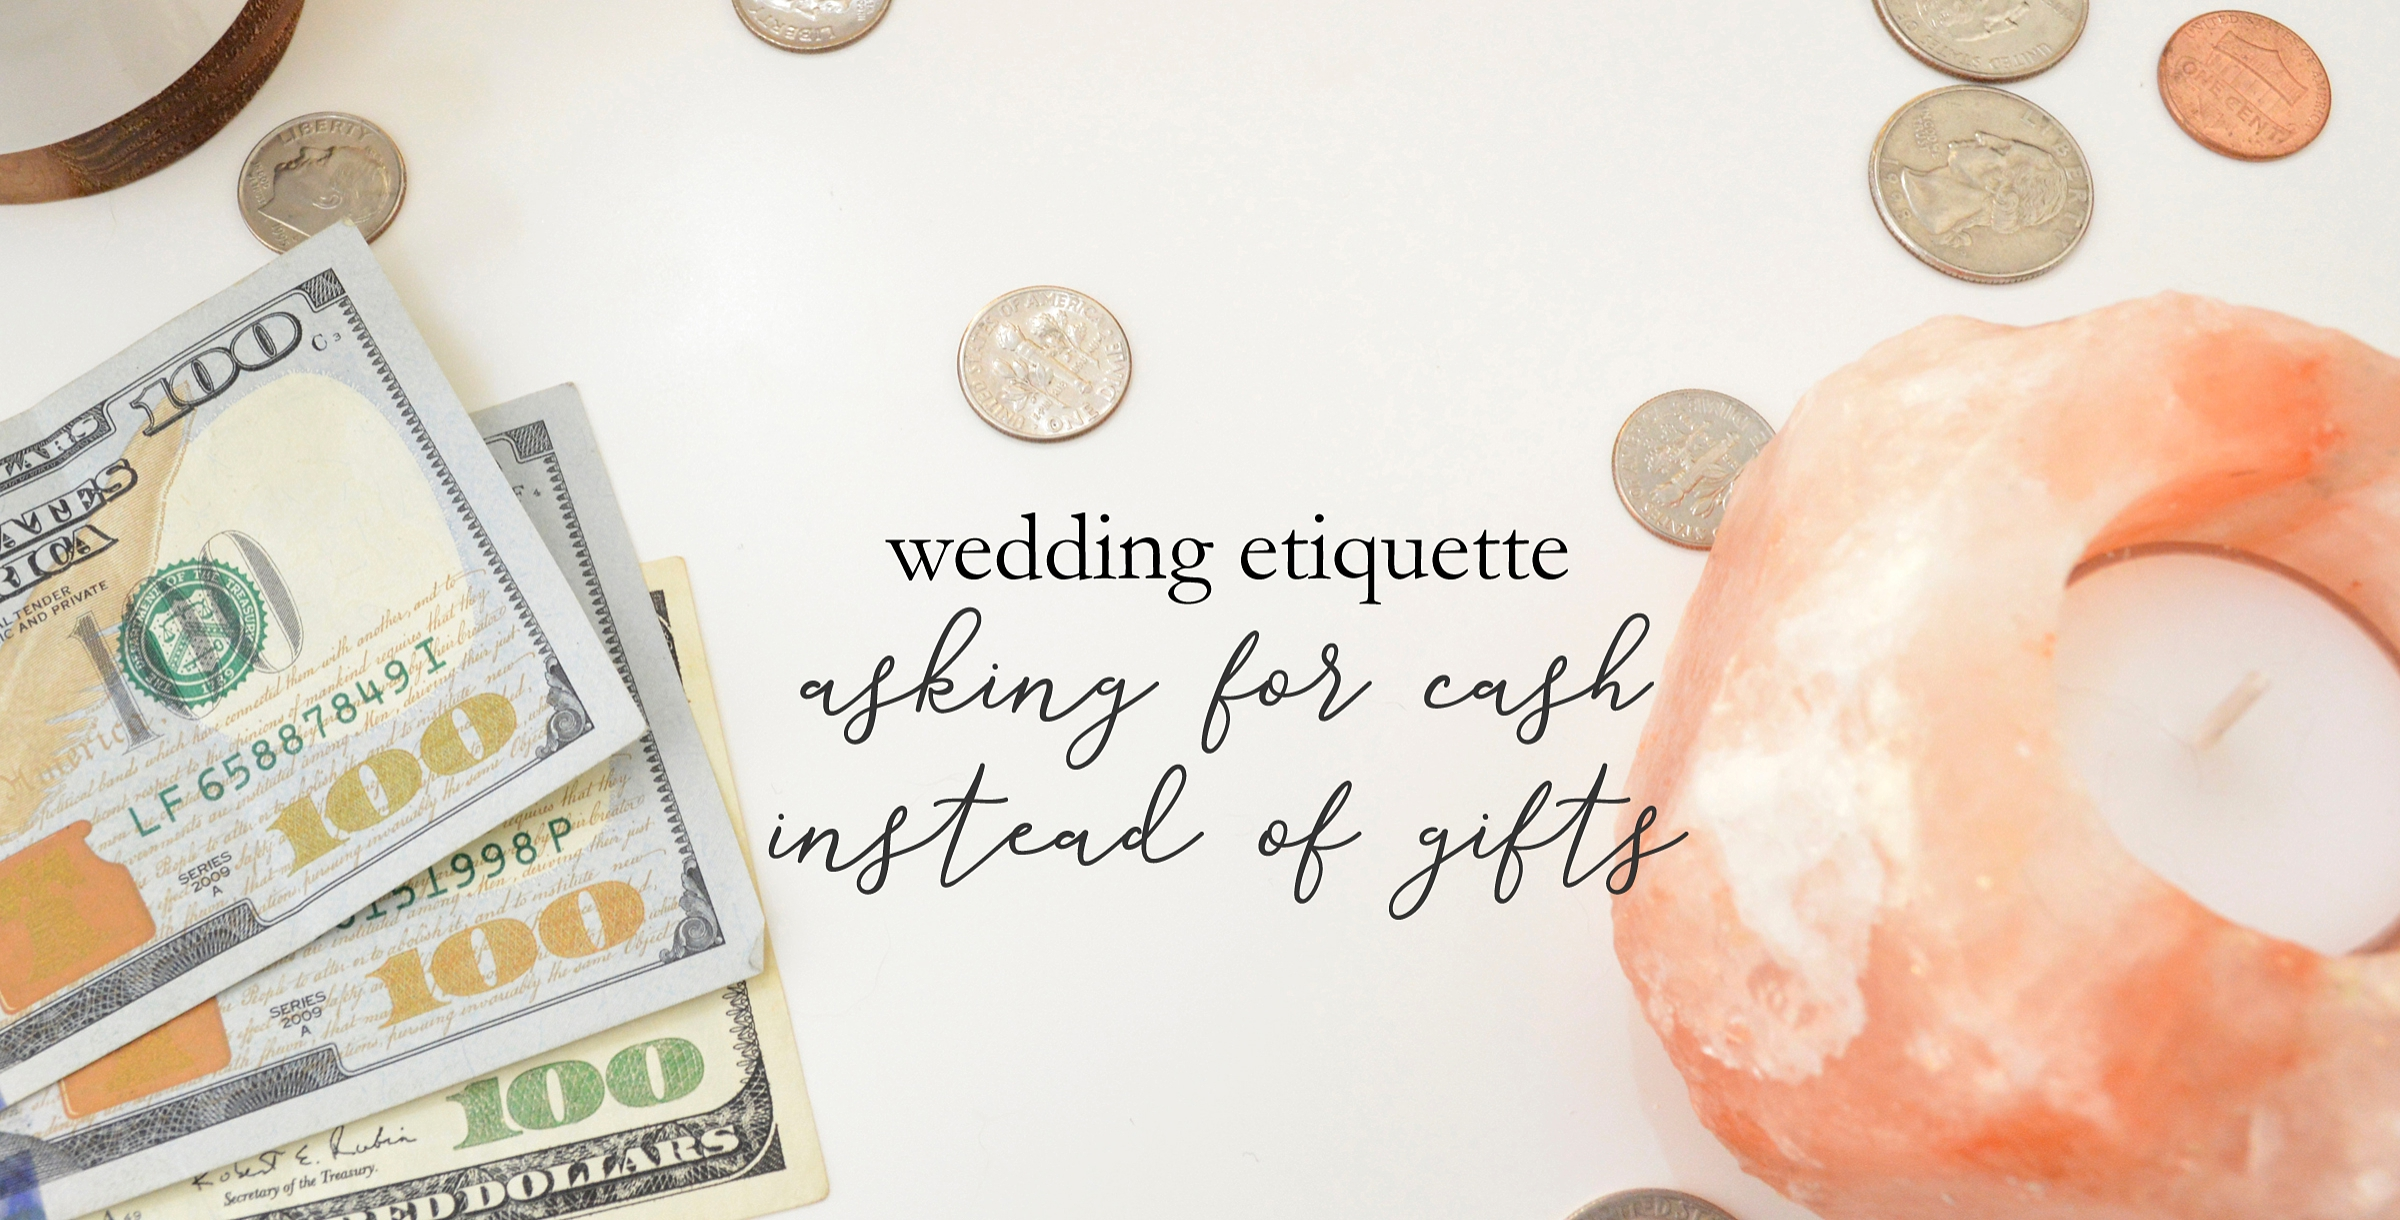 asking for cash instead of wedding